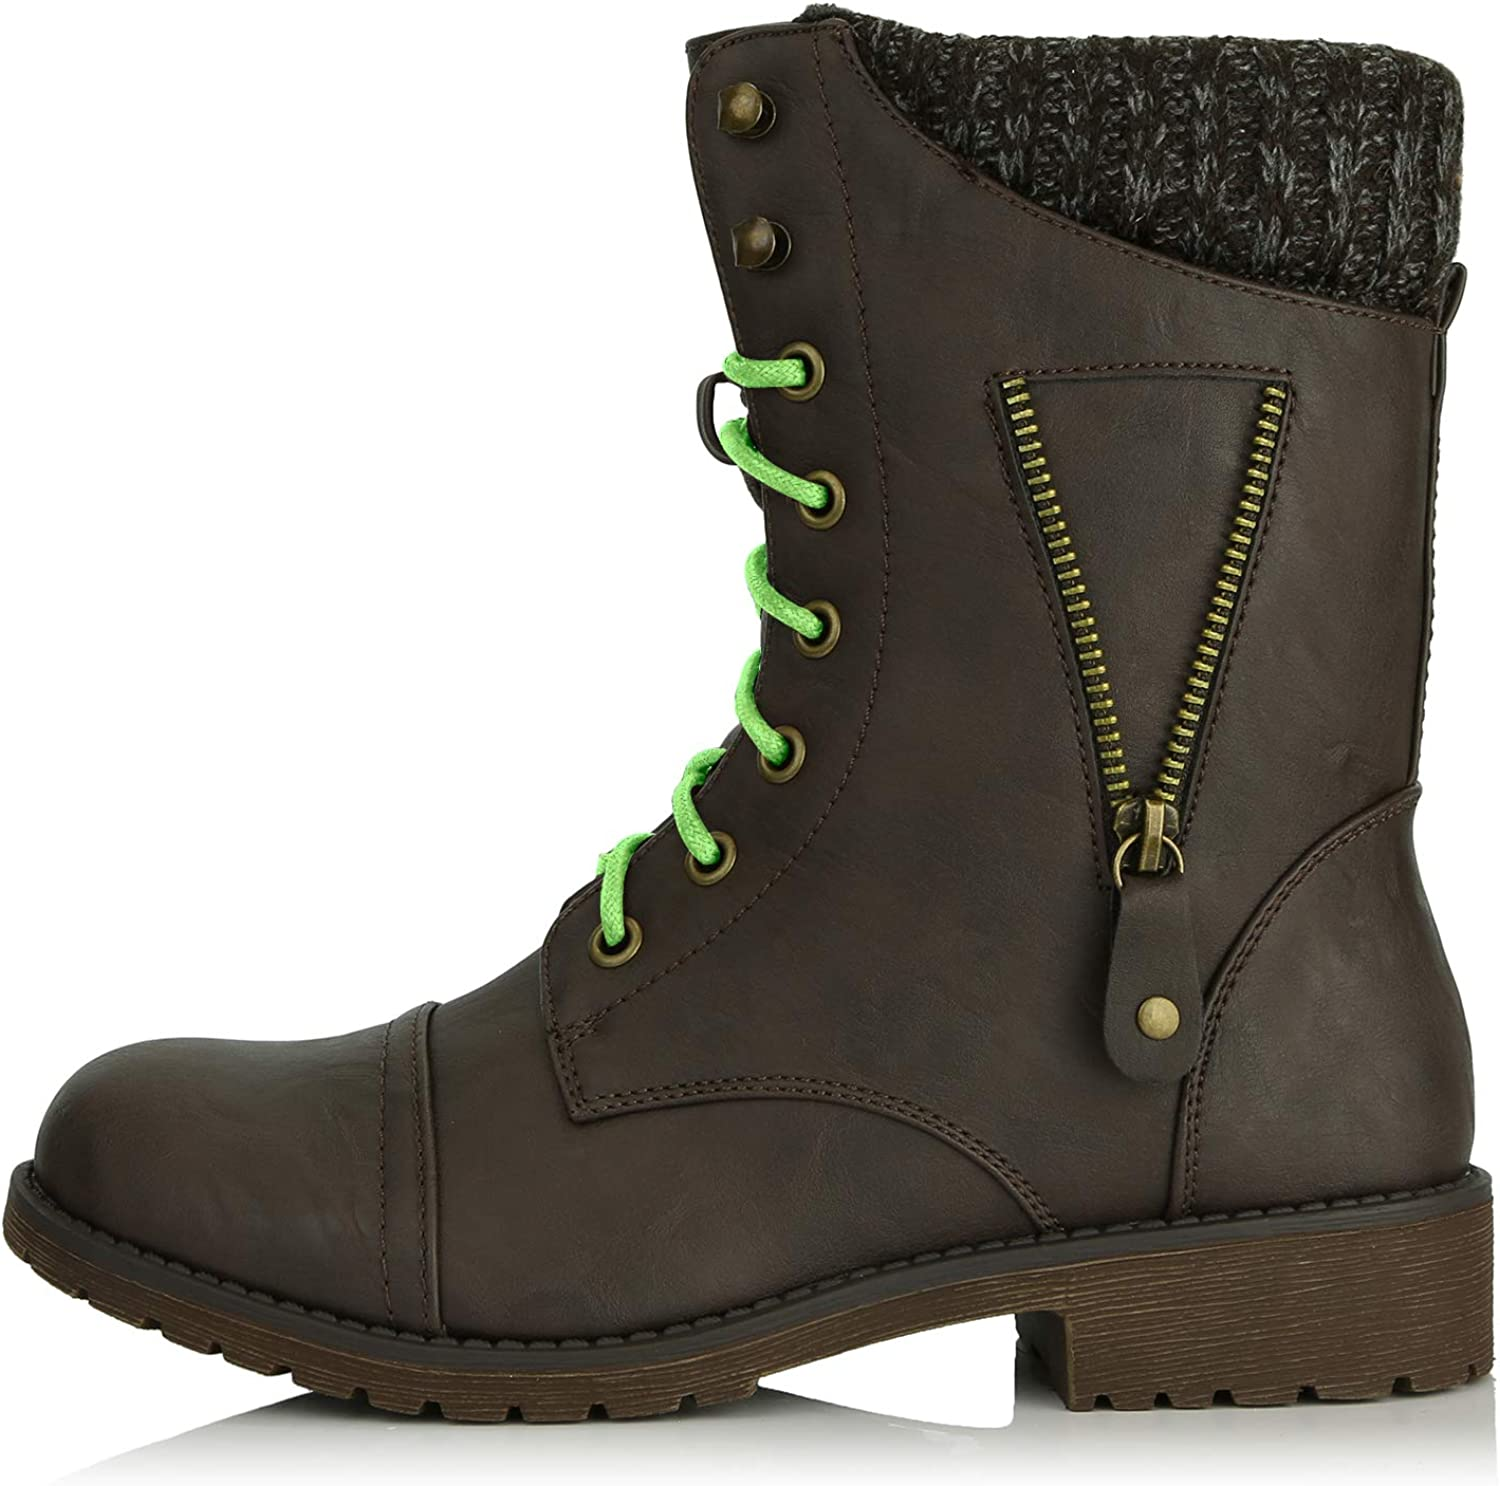 DailyShoes Women's Military Lace Up Buckle Combat Boots Zipper Sweater Ankle High Exclusive Credit Card Pocket, Lime Green